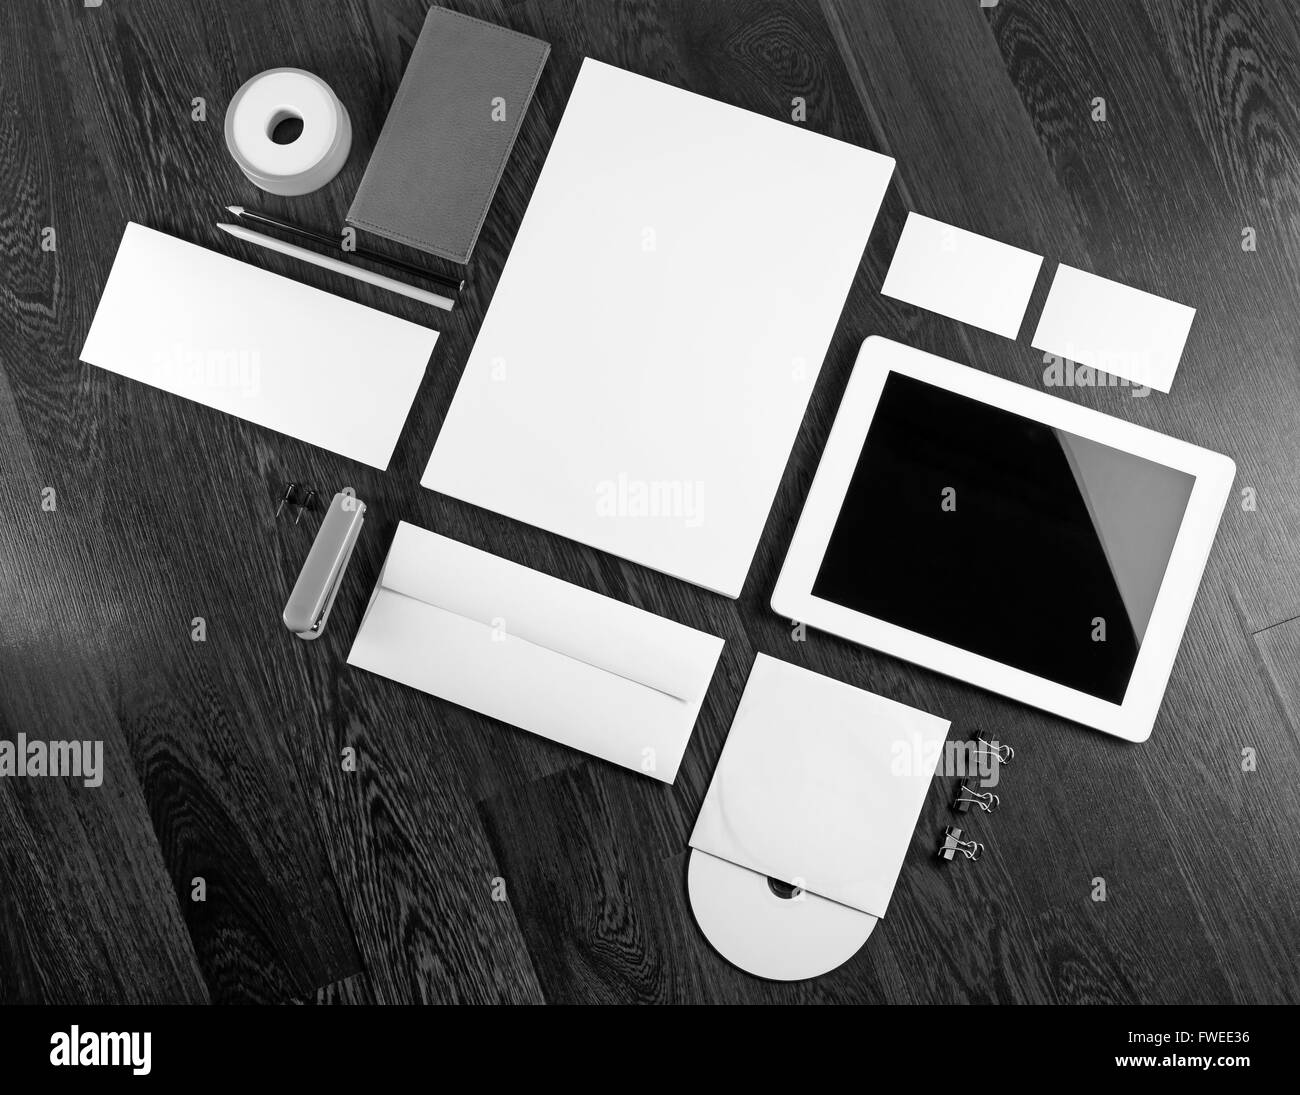 Blank Stationery And Corporate Identity Template Consist: Photo Of Blank Corporate Identity Template On Dark Wooden